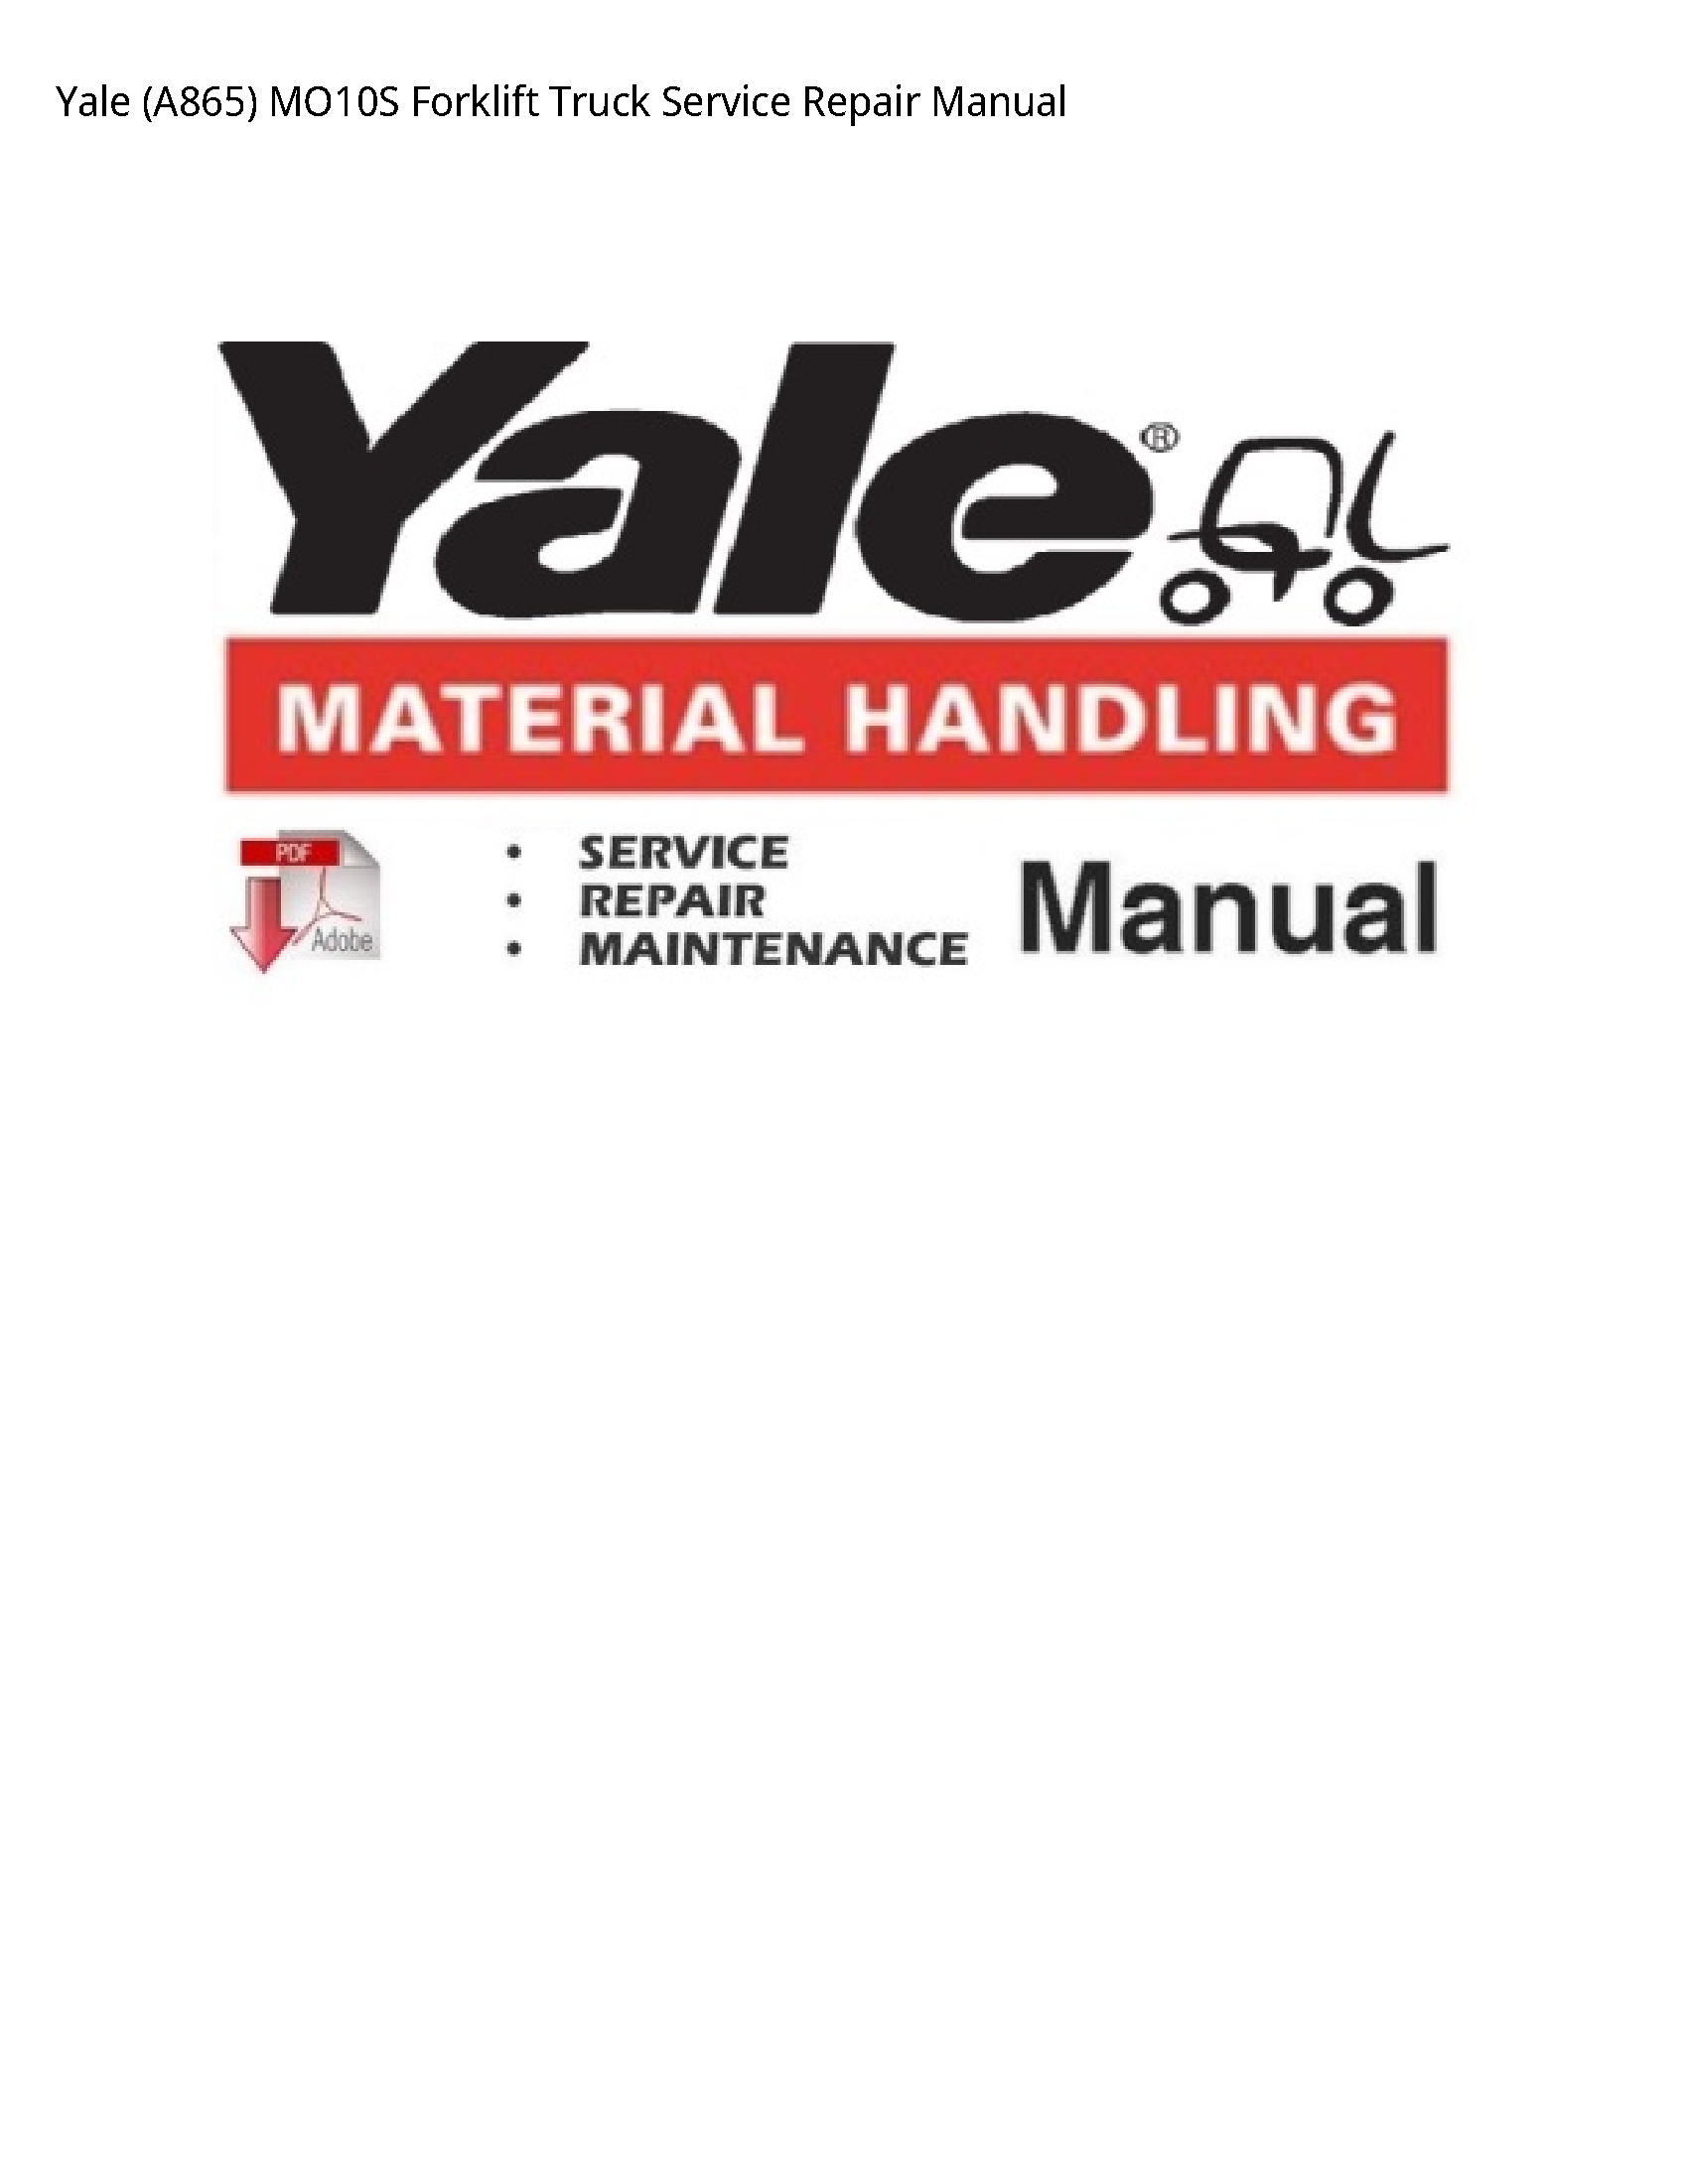 Yale (A865) Forklift Truck manual